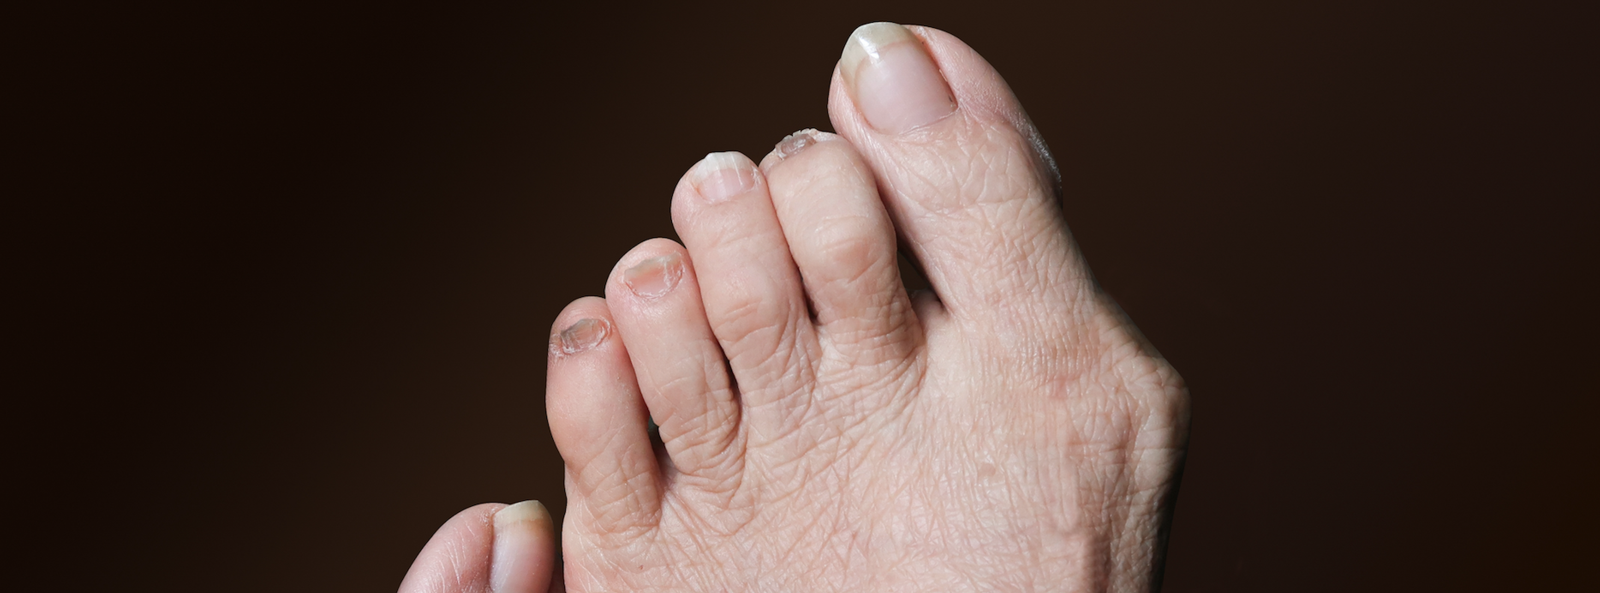 A close-up of a person's bunion